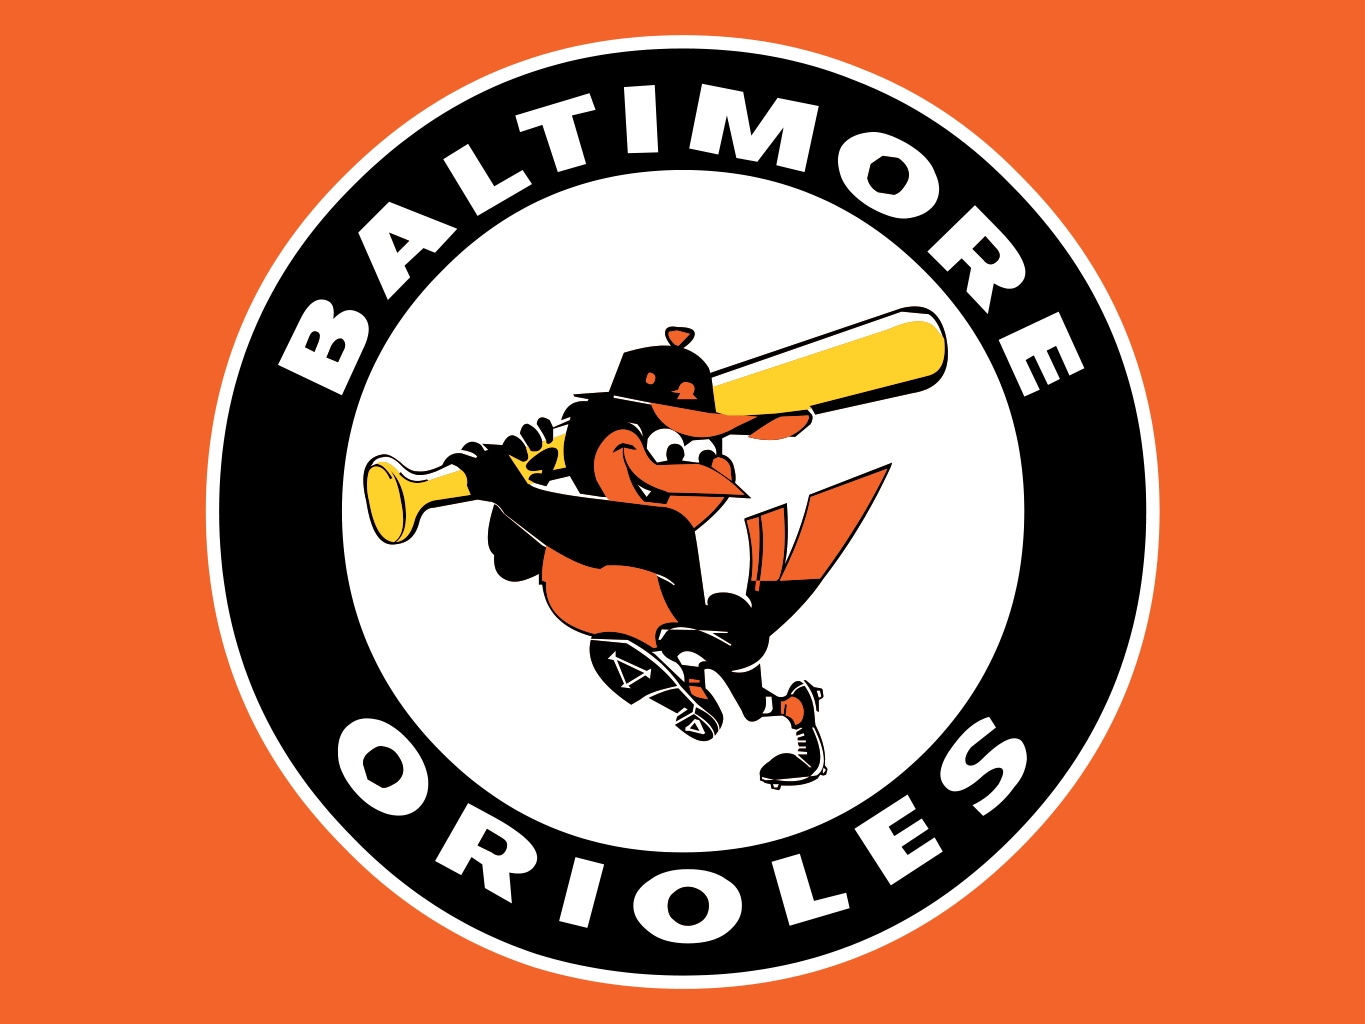 8 Hd Baltimore Orioles Wallpapers Hdwallsource Com HD Wallpapers Download Free Images Wallpaper [1000image.com]